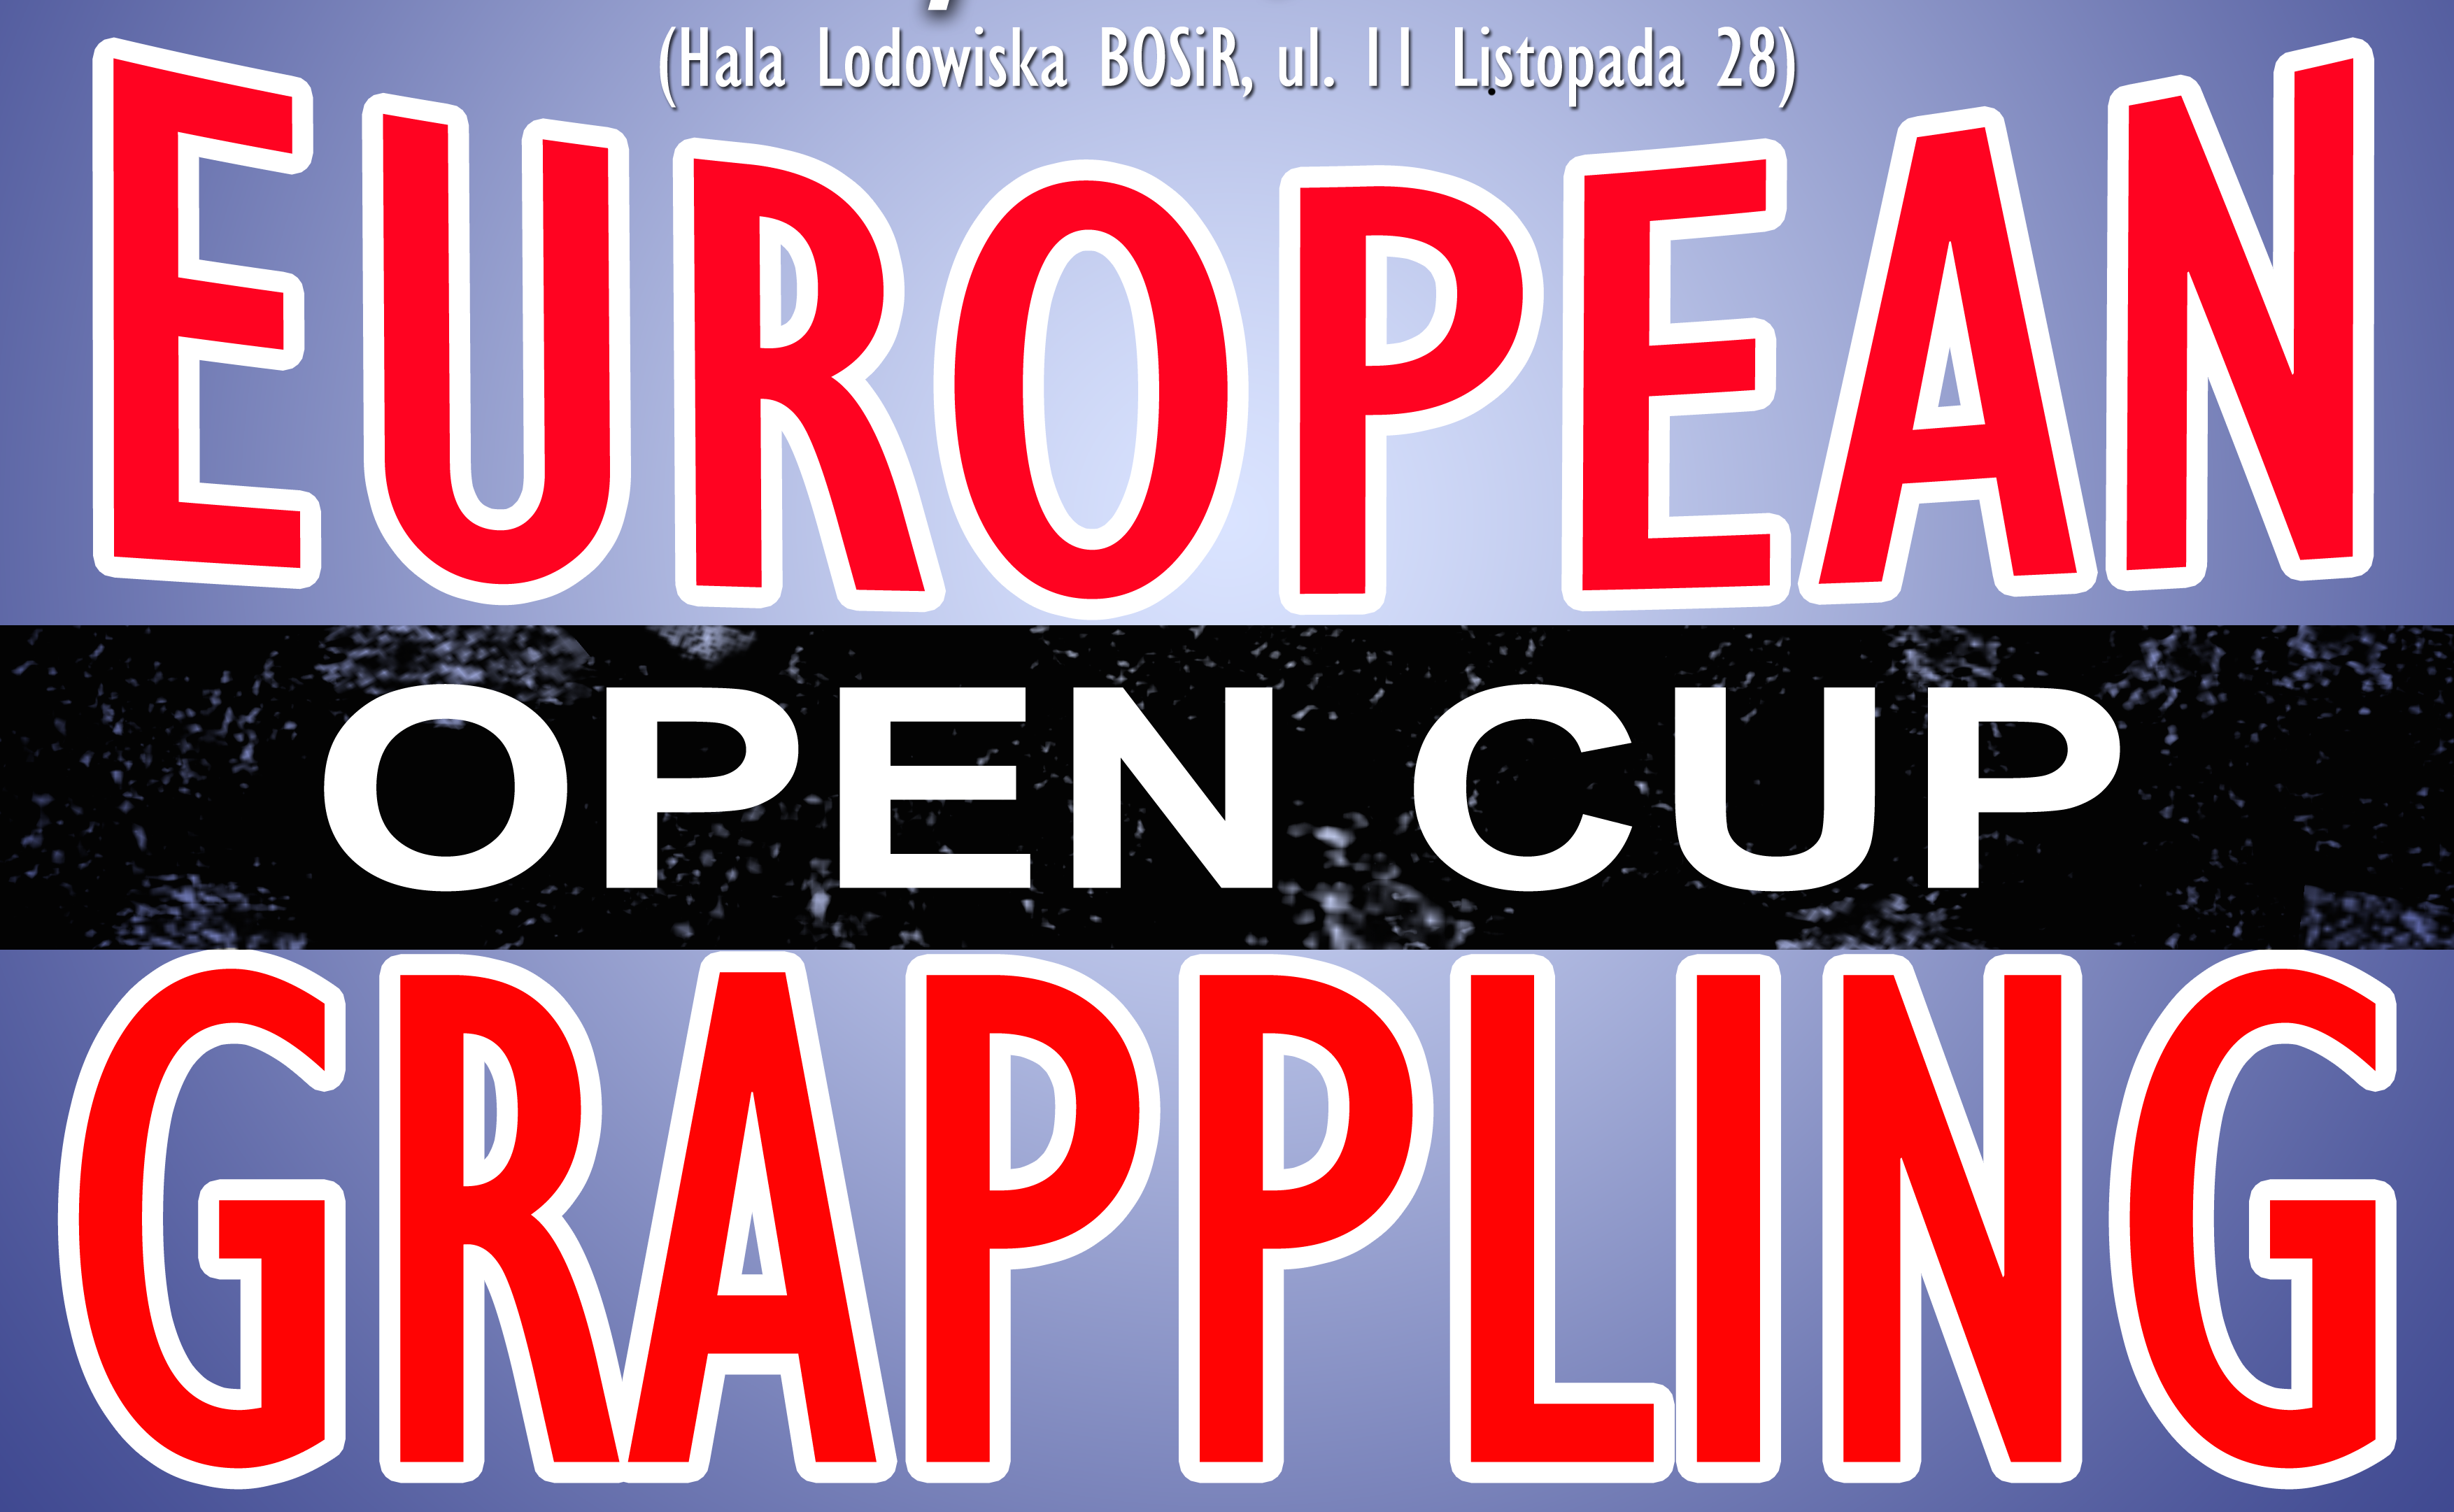 European Open Cup of Grappling, Poland, 6 June 2015